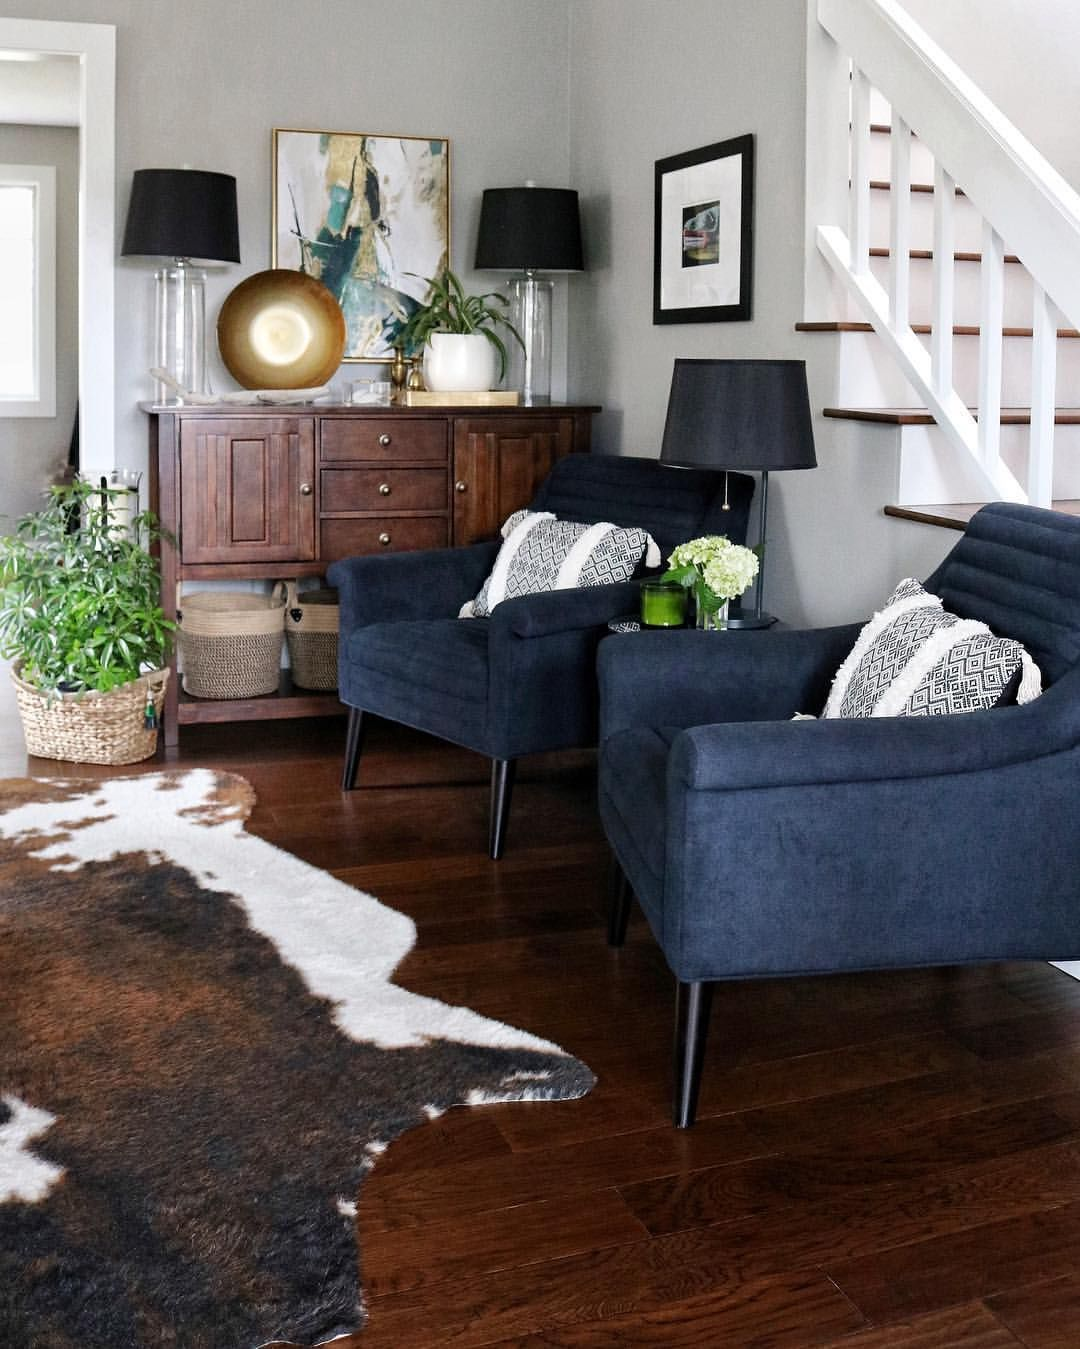 Living Room with Navy Chairs & Faux Cowhide Rug | Living ...